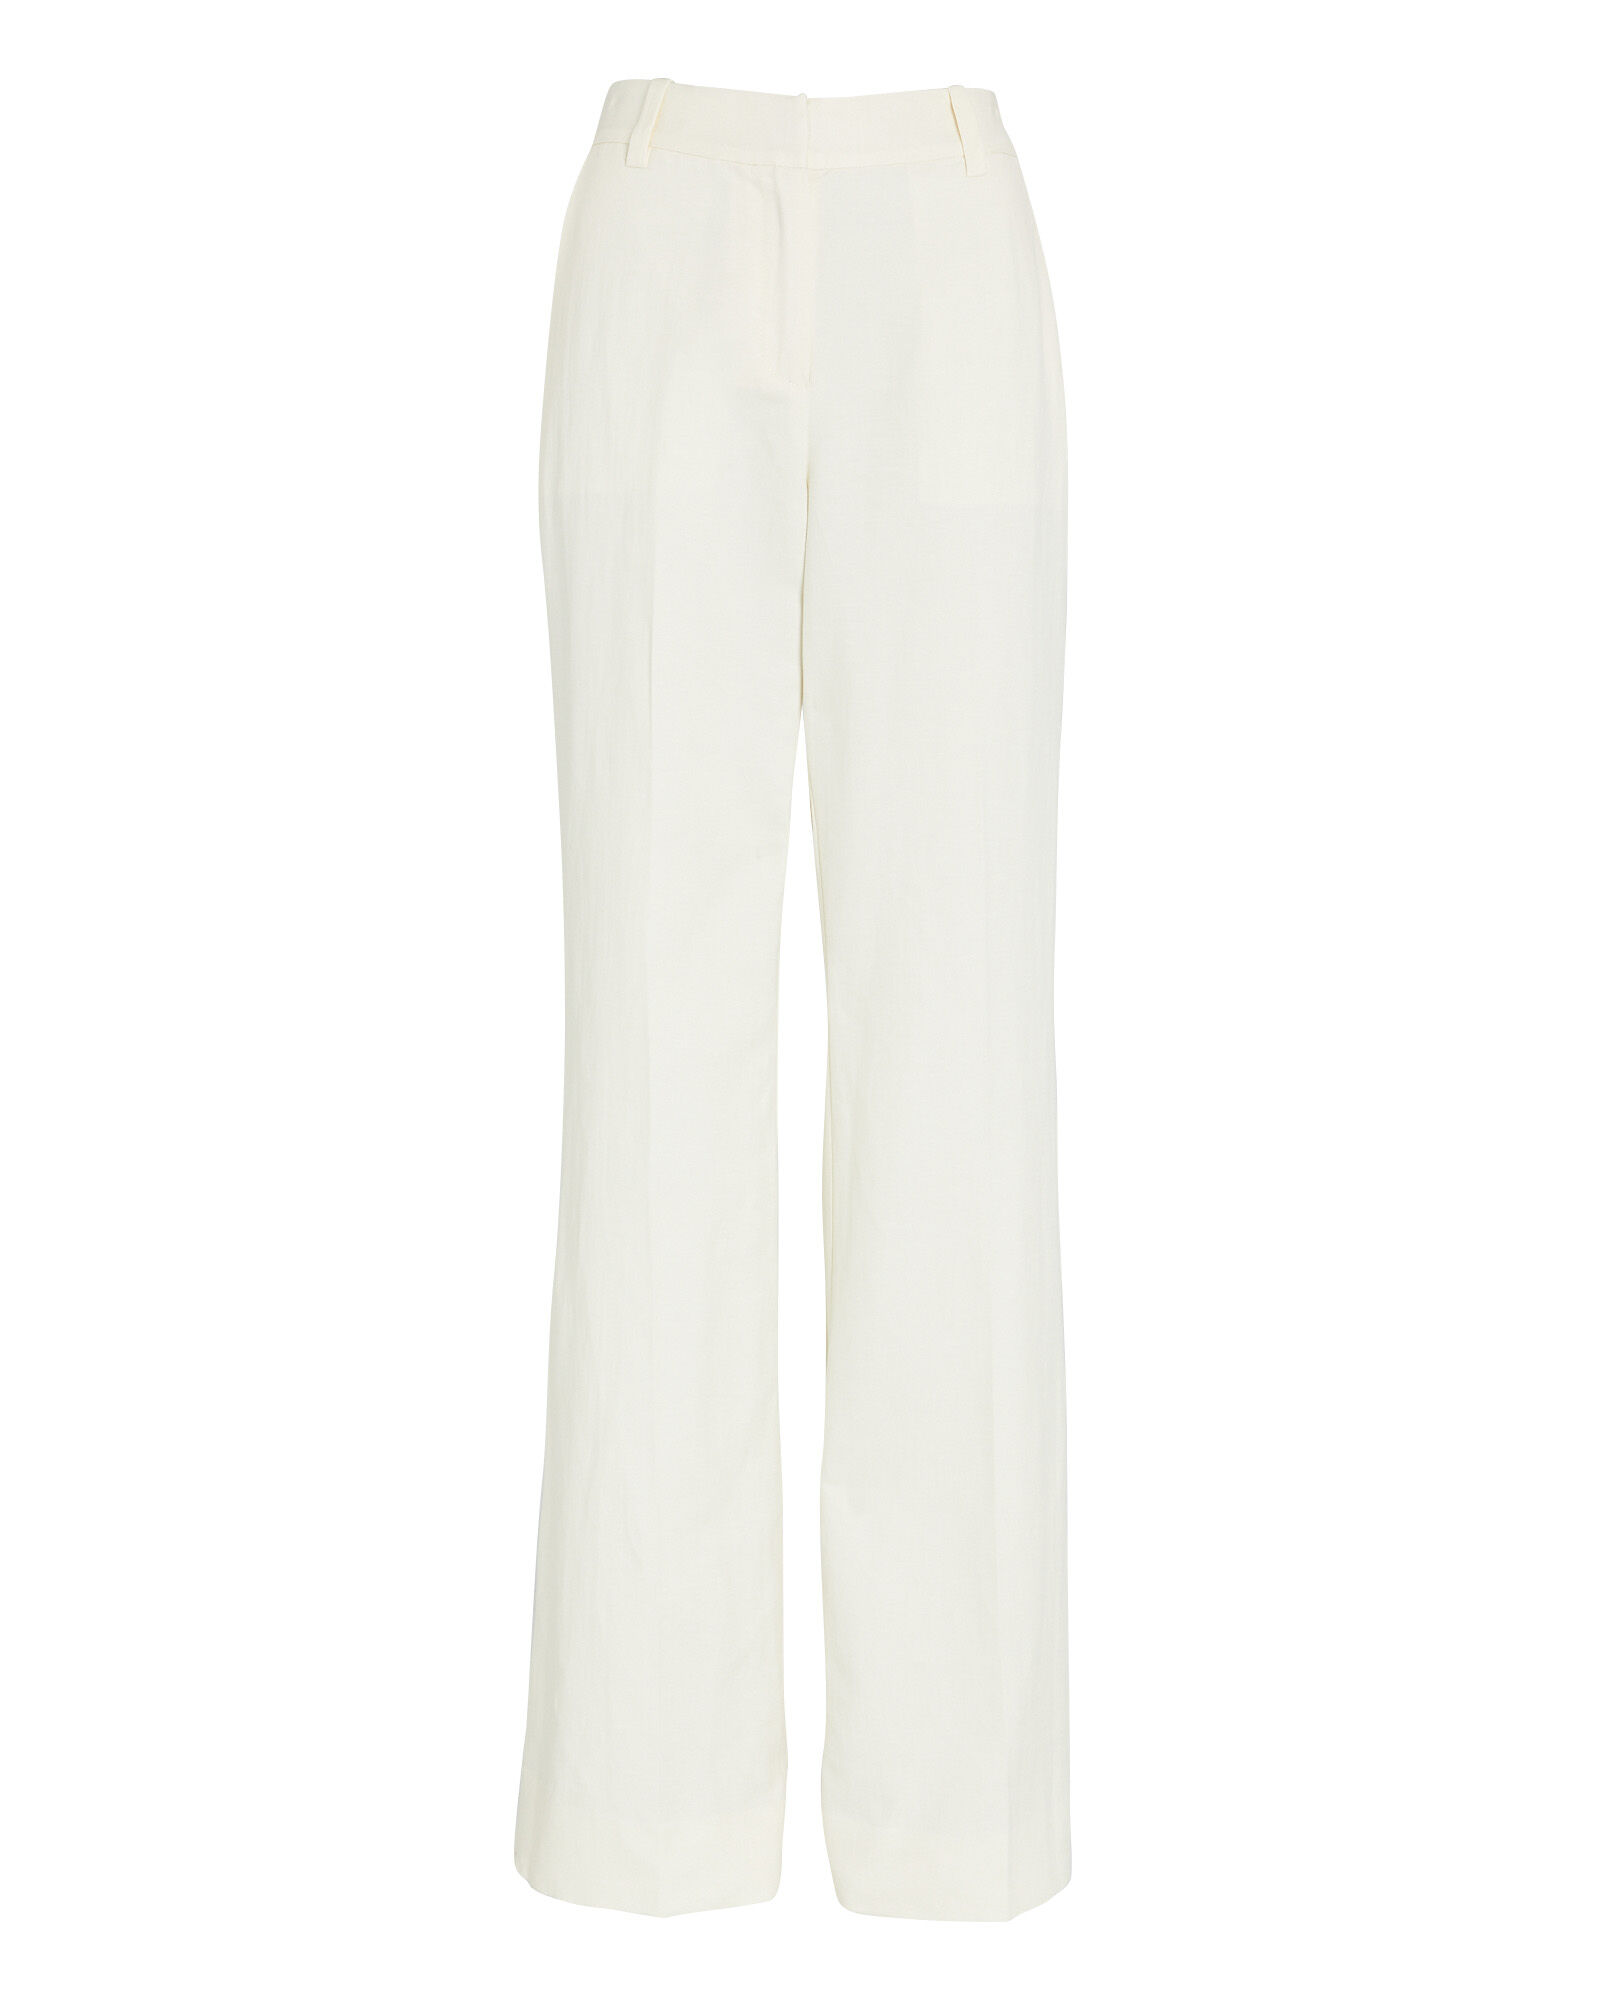 Wide-Leg Linen-Blend Pants, IVORY, hi-res